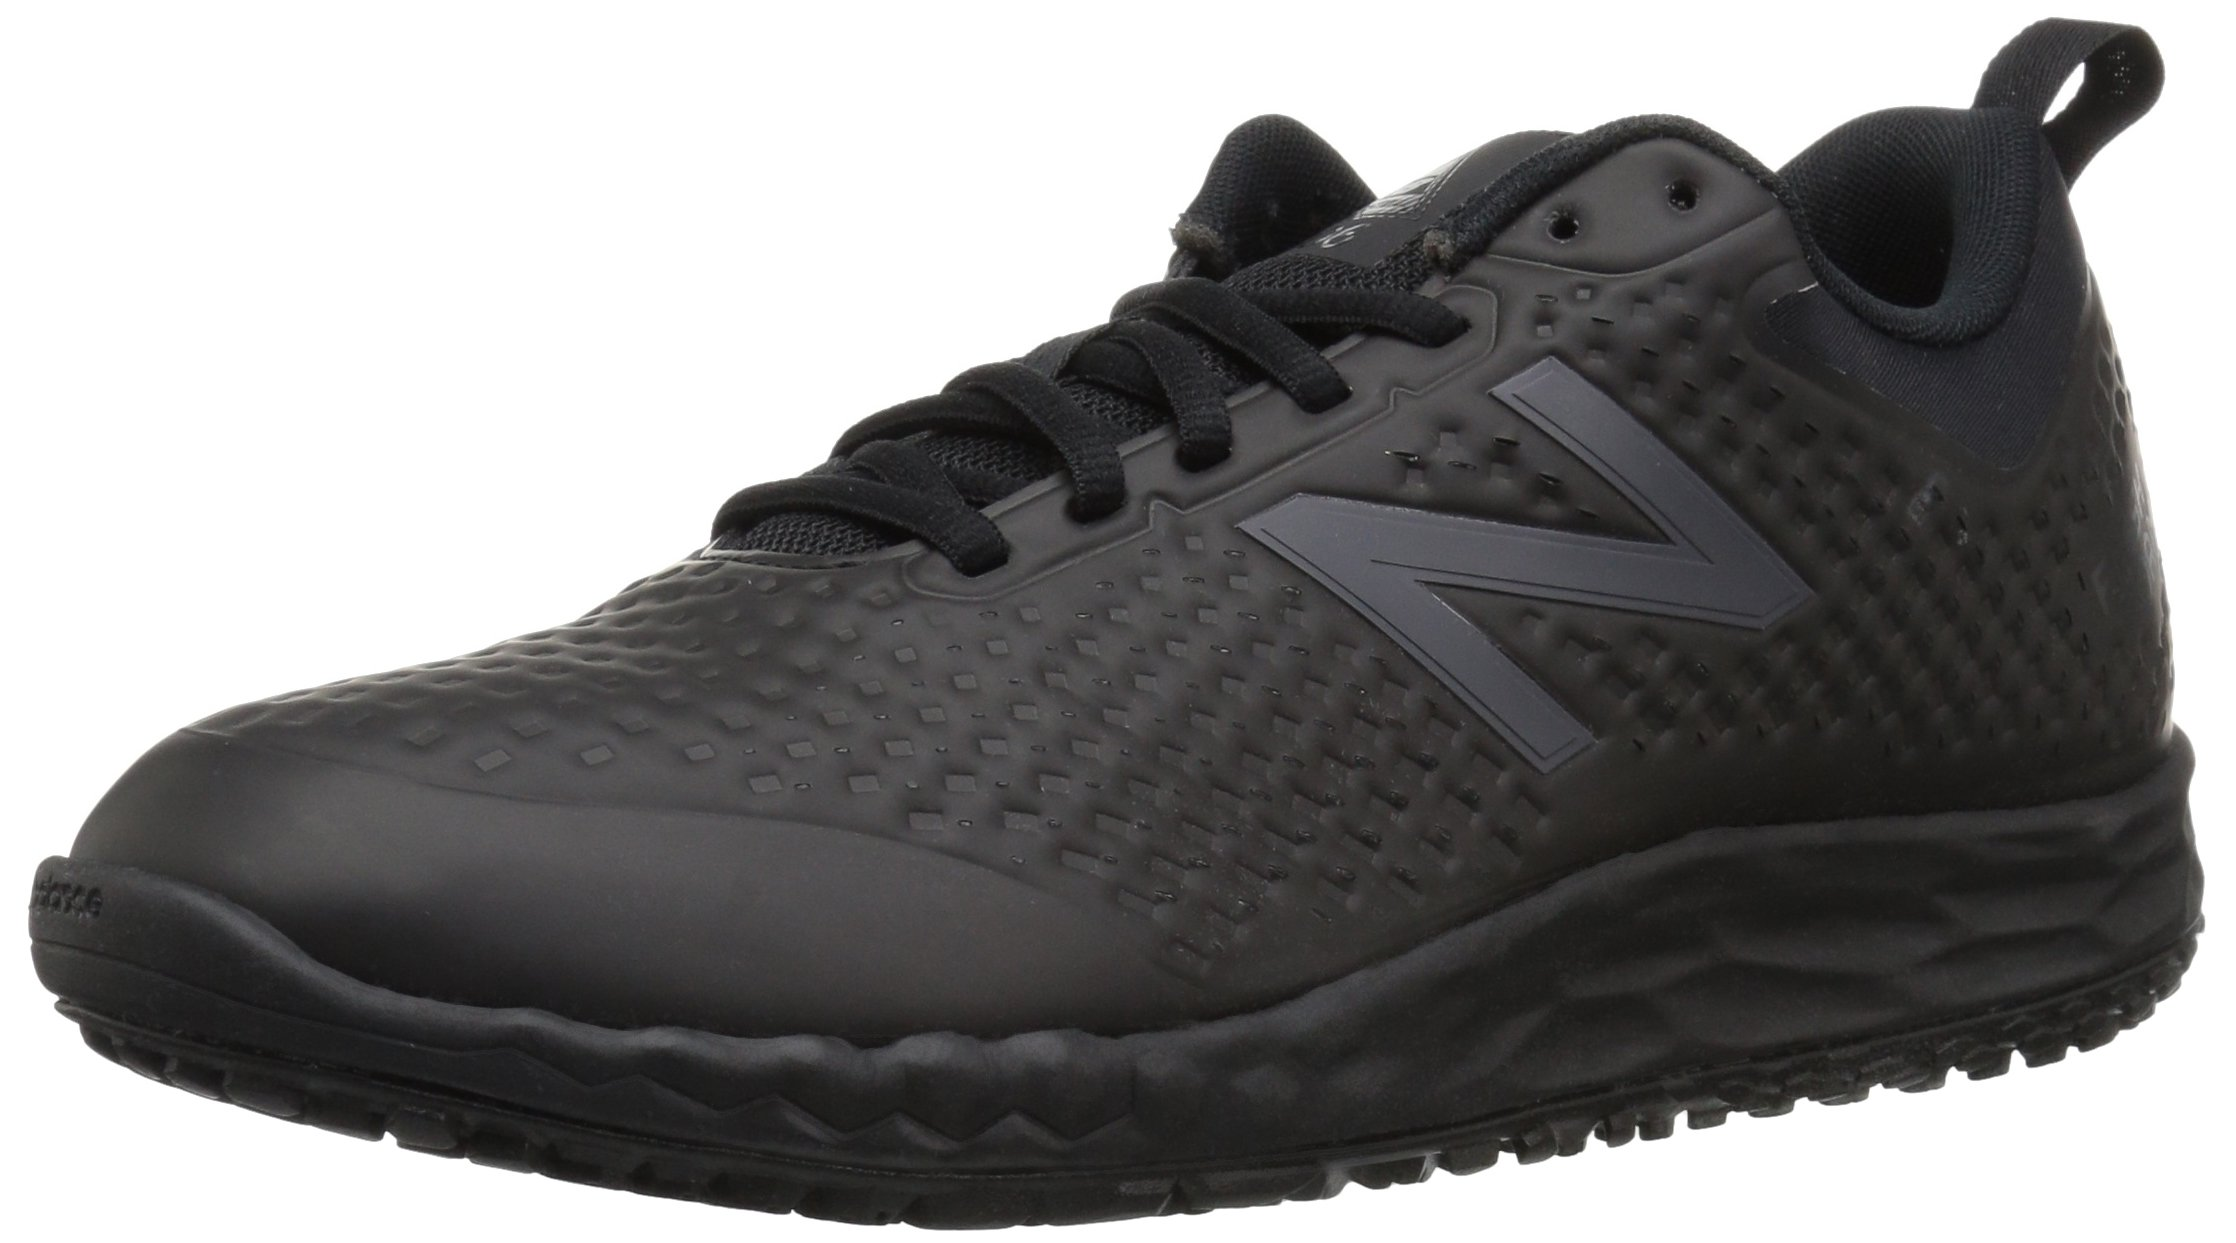 New Balance Men's 806v1 Work Training Shoe, Black, 12 2E US by New Balance